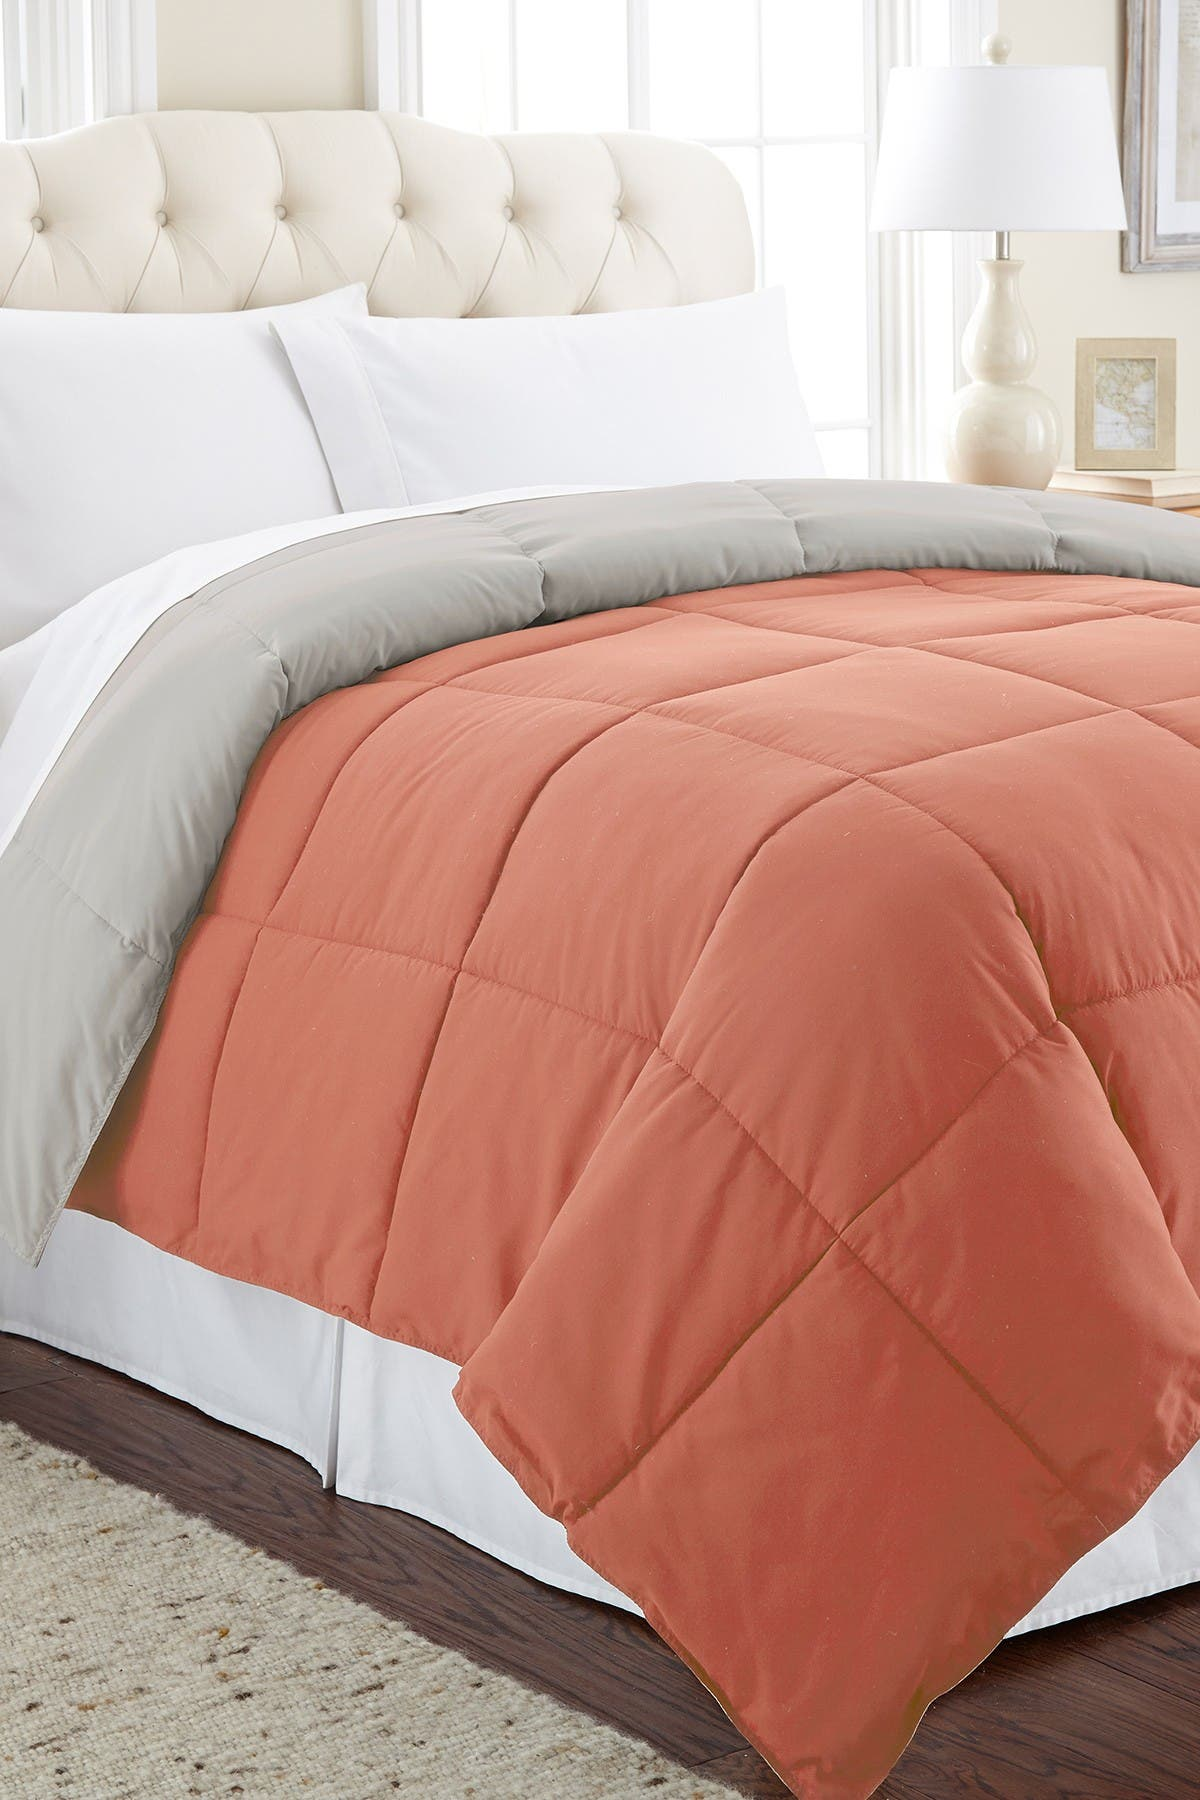 Image of Modern Threads Down Alternative Reversible King Comforter - Orange Rust/Oatmeal